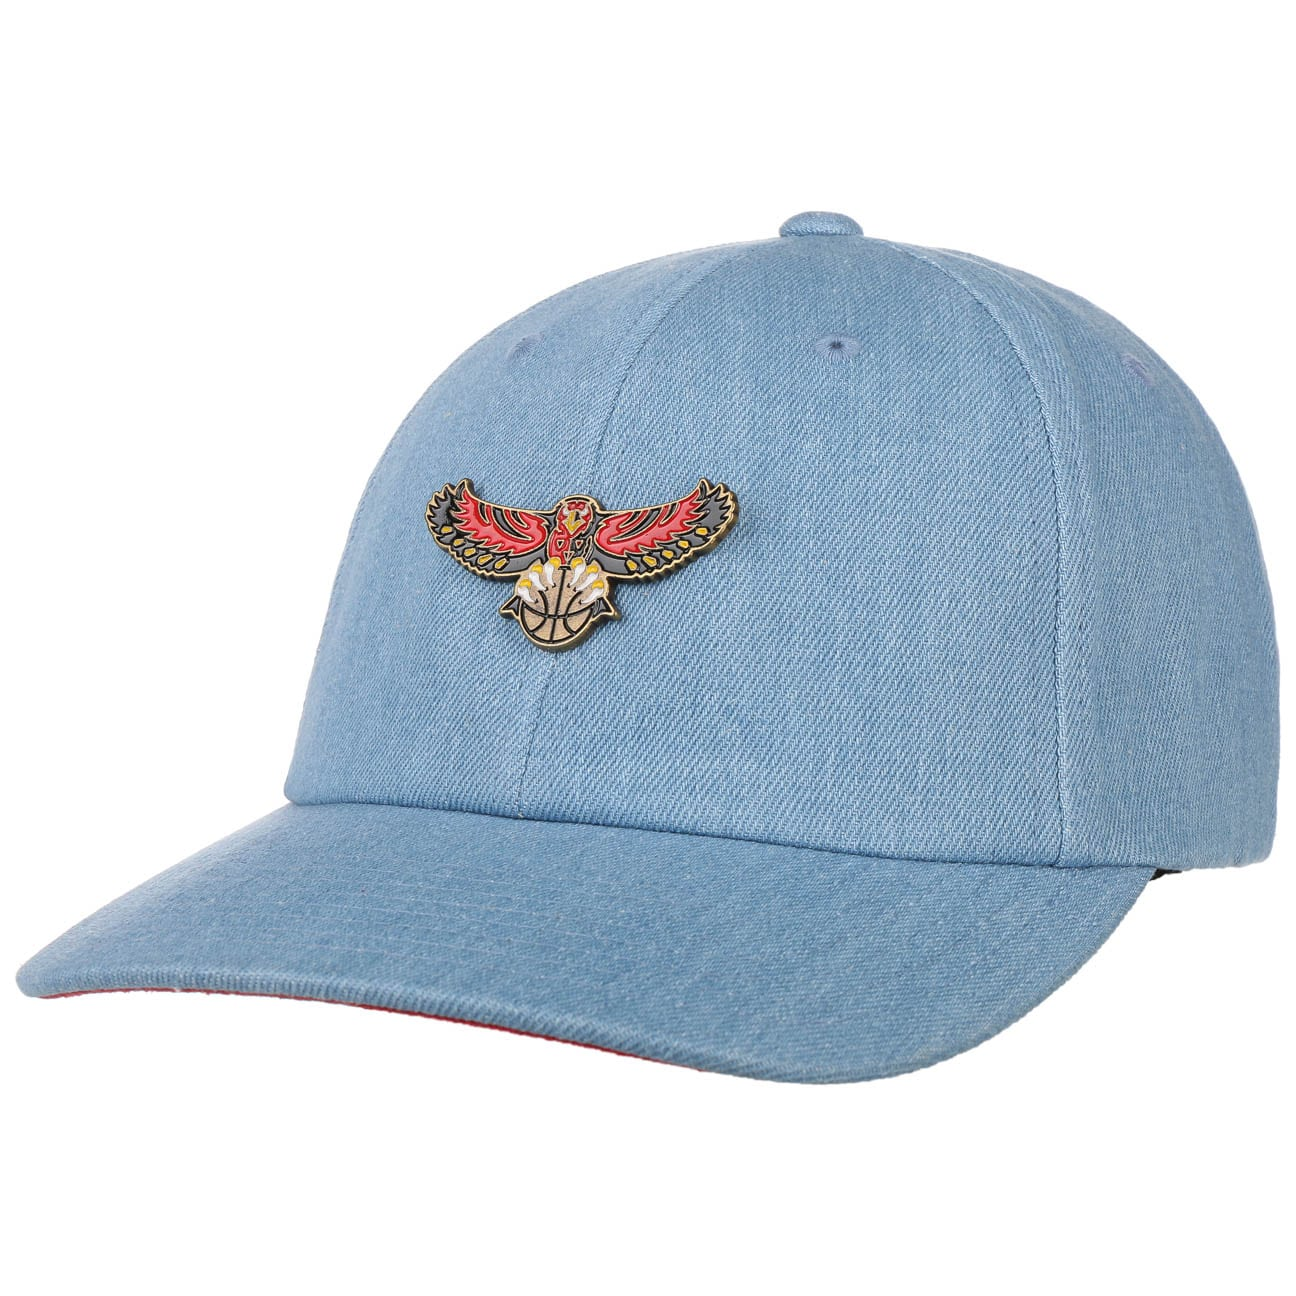 Gorra Denim HWC Hawks by Mitchell & Ness  Curved Brim Cap